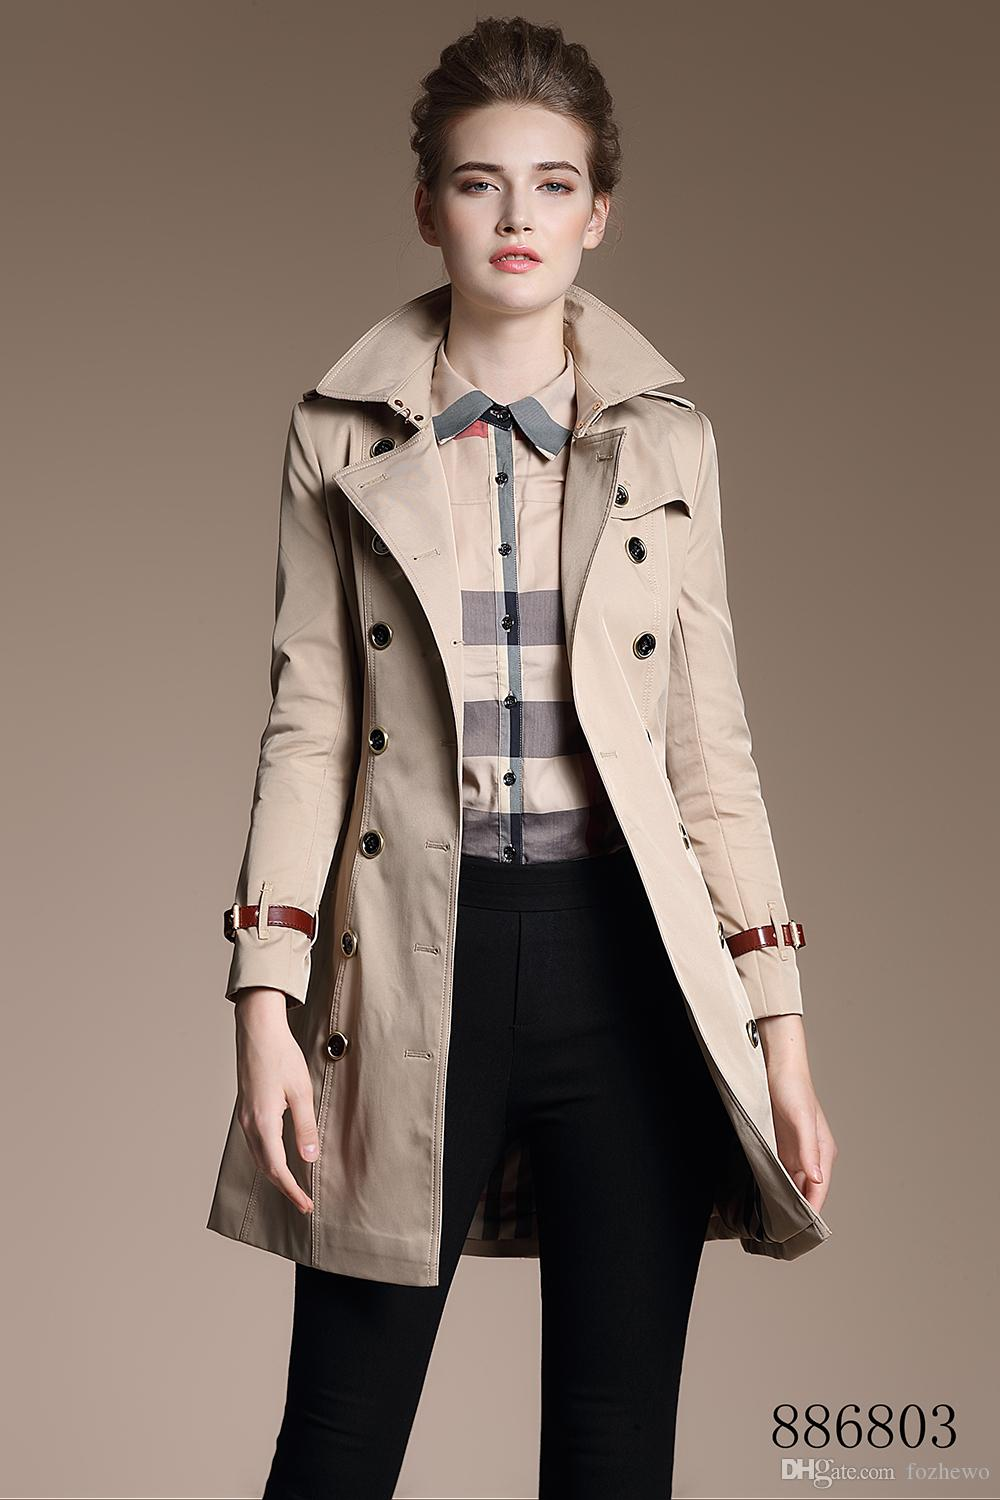 Spring Autumn New High Fashion Brand Woman Classic Double Breasted Trench Coat Waterproof Raincoat Business Outerwear